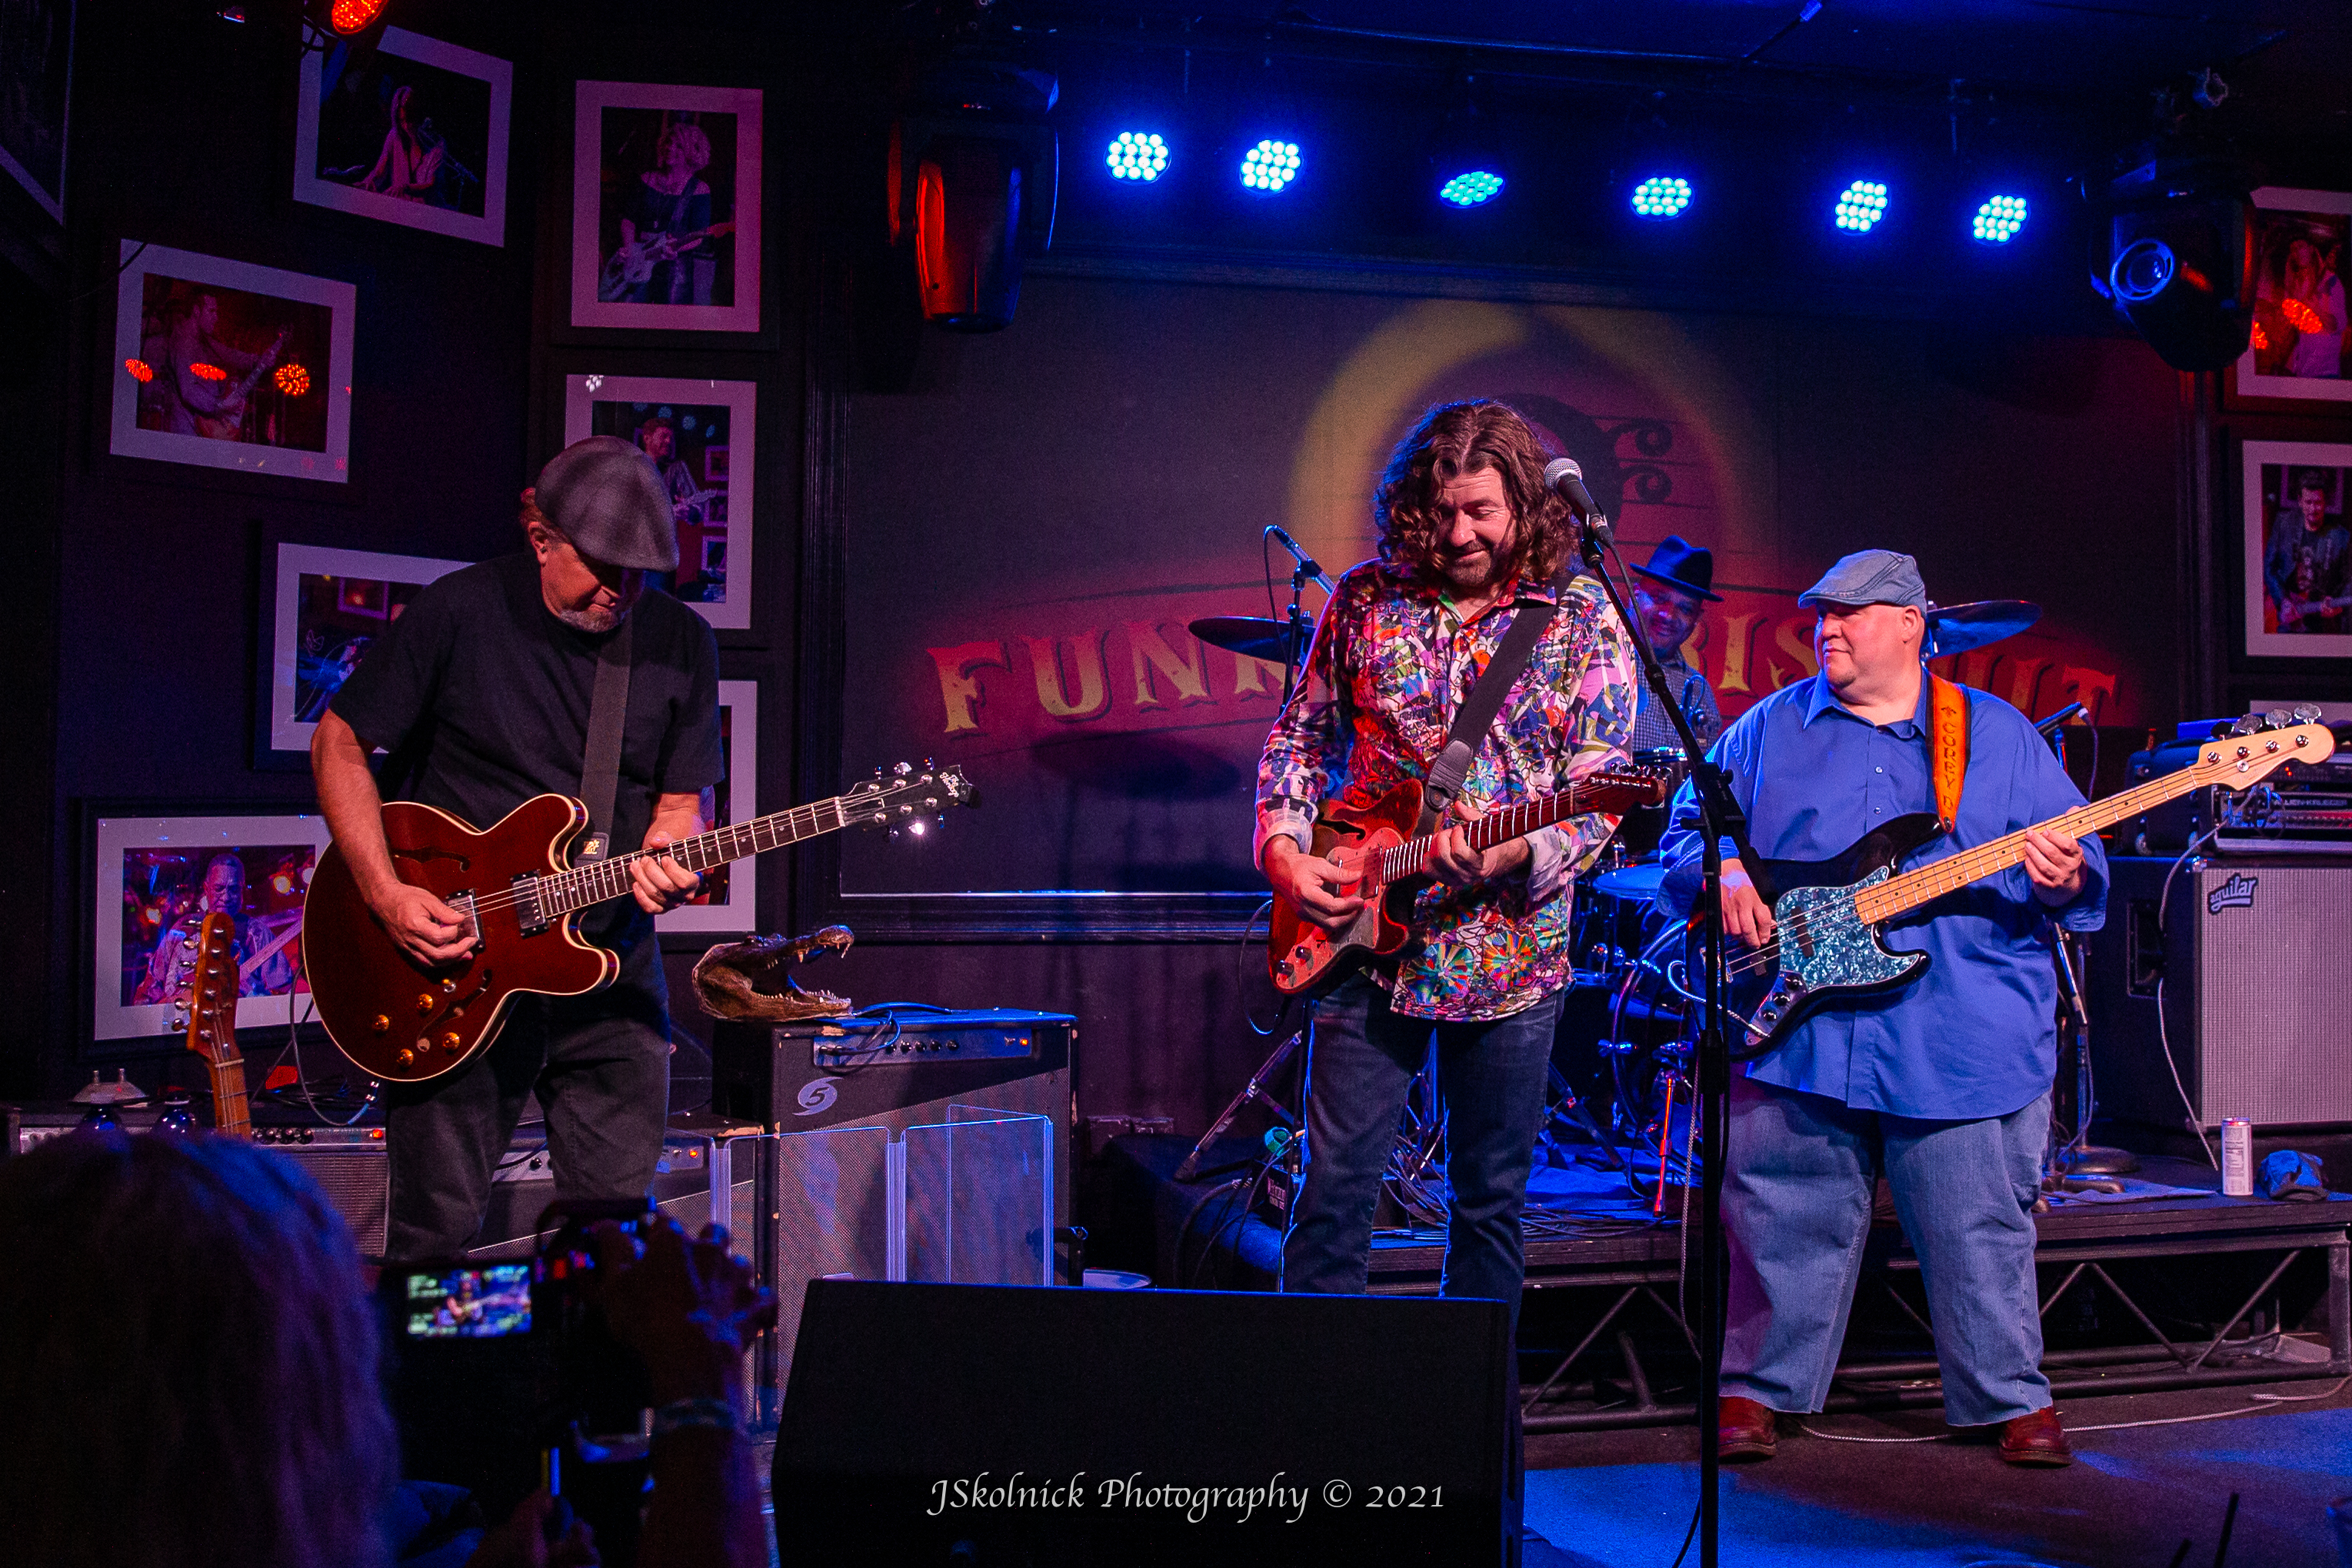 tab benoit playing at the funky biscuit